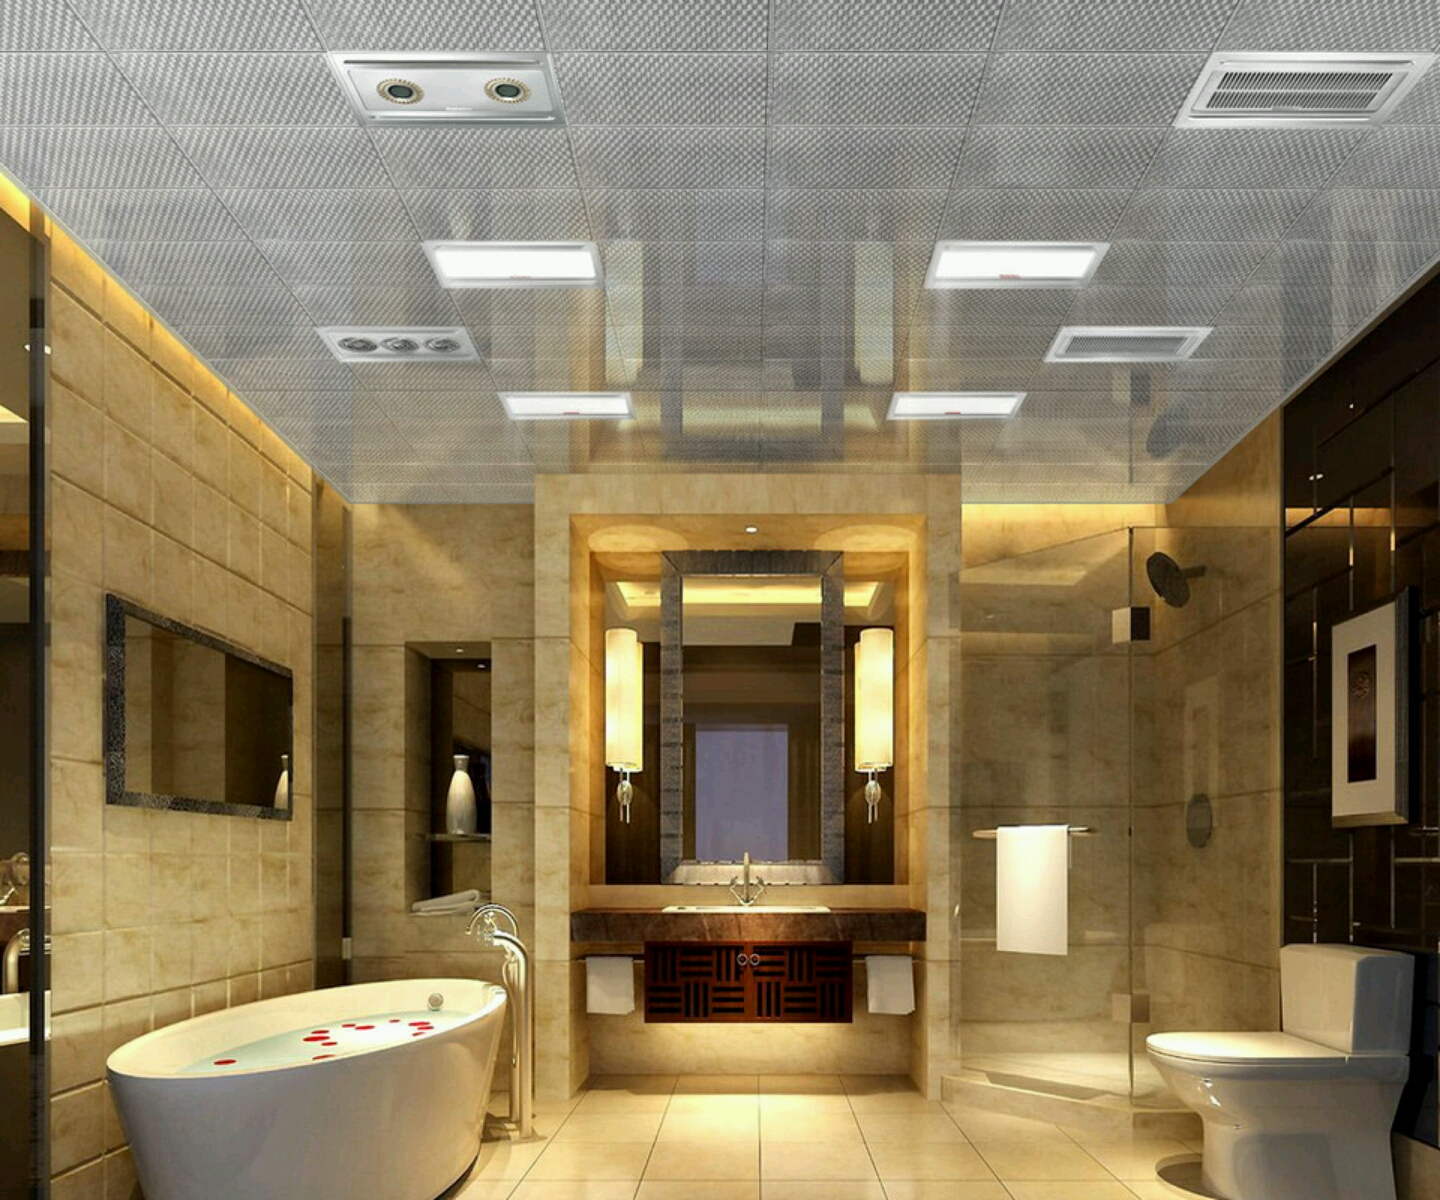 30 beautiful pictures and ideas high end bathroom tile designs Best bathroom design pictures